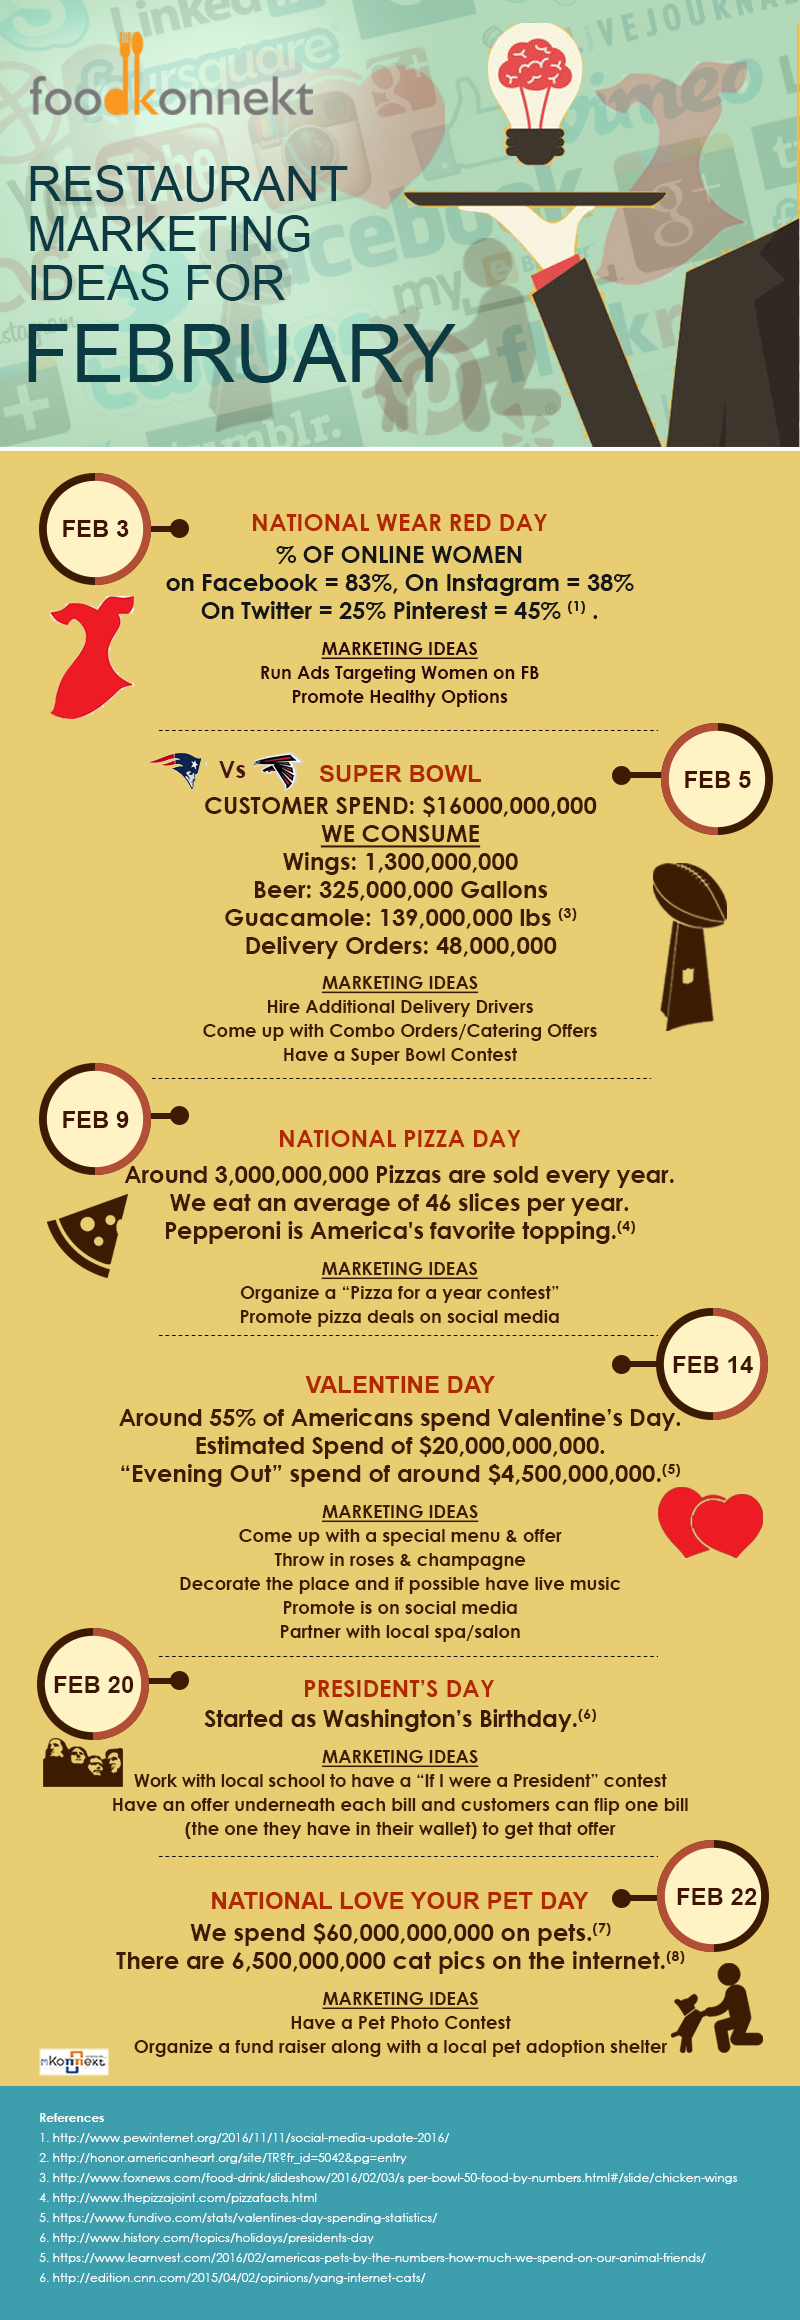 Here are some great restaurant marketing ideas for February 2017. Compliments of FoodKonnekt.